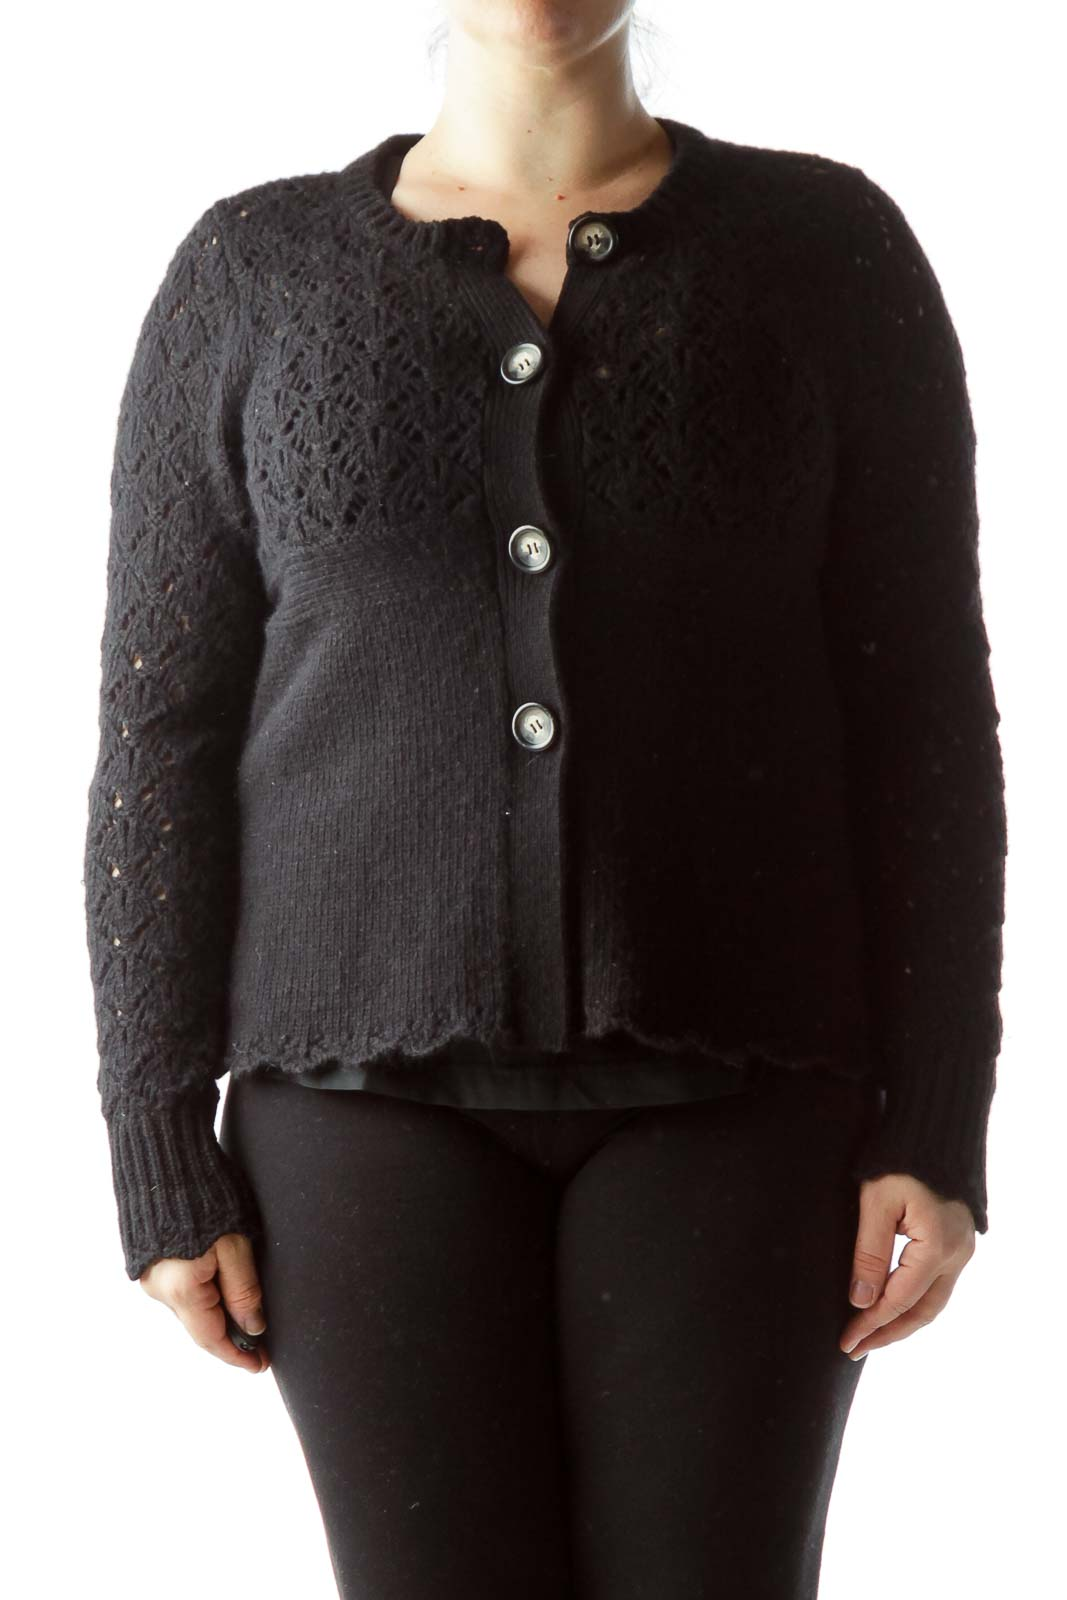 Black Knitted Long Sleeve Buttoned Soft Sweater